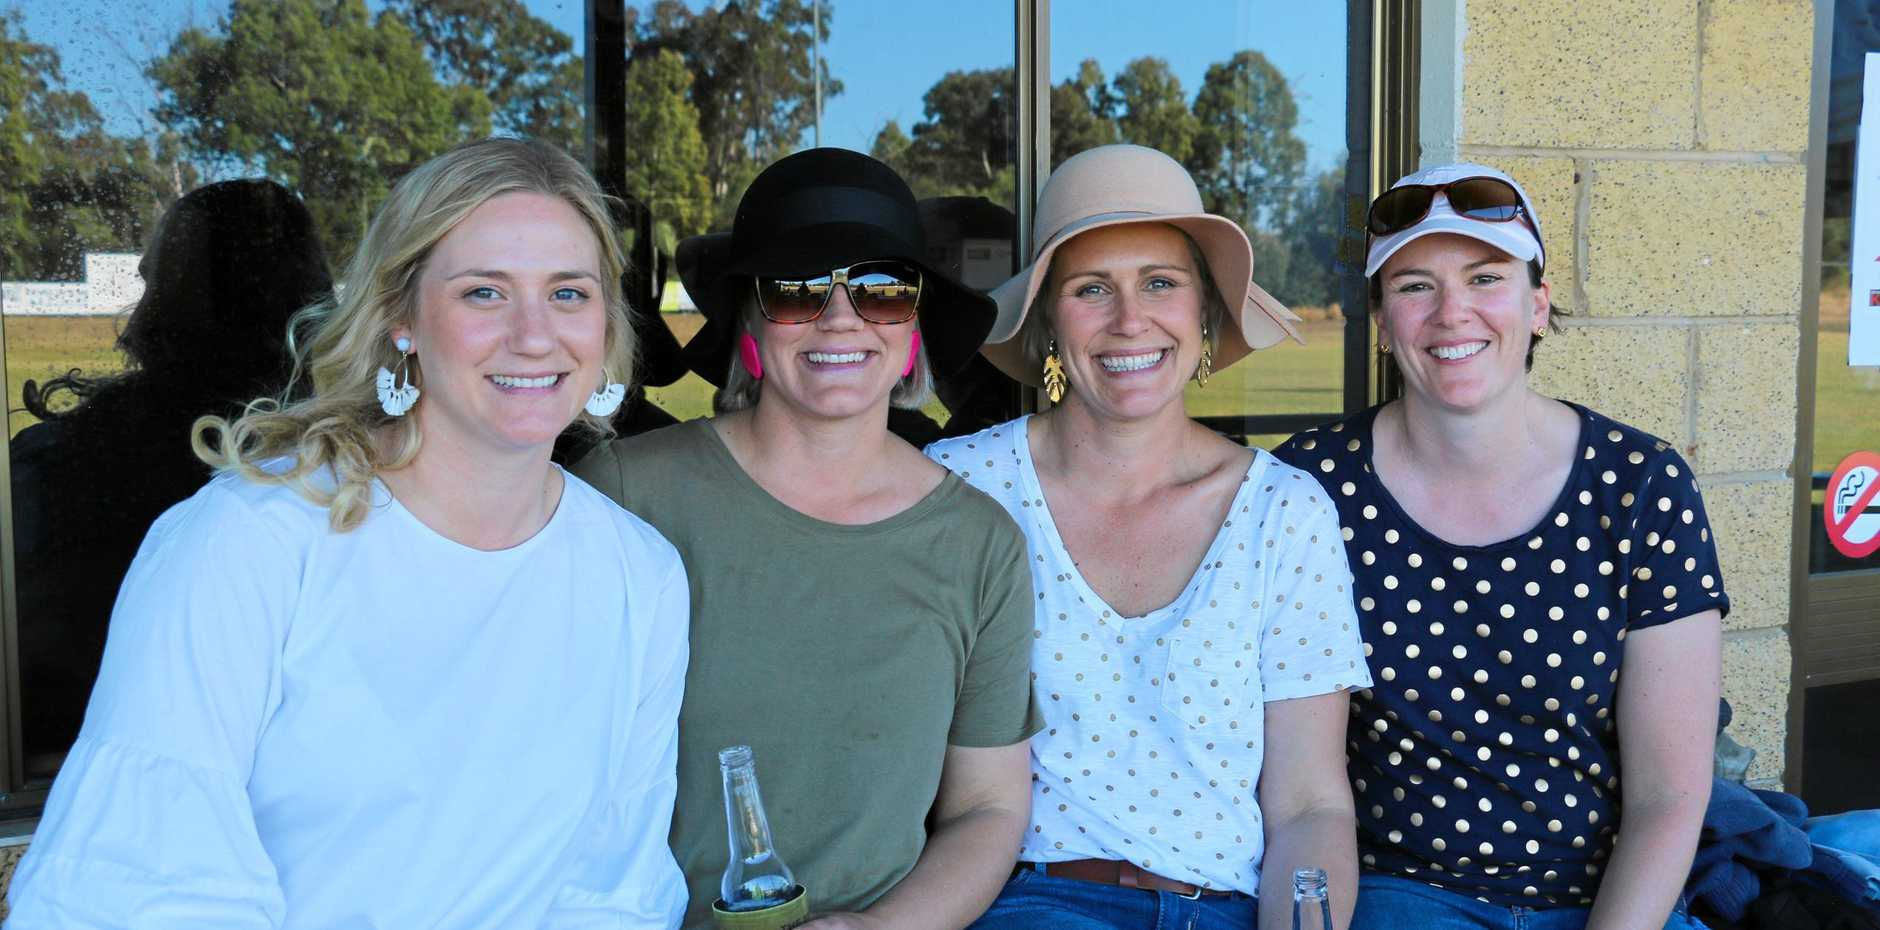 FUN AT THE FOOTY: Anna Reynolds, Bec Connolly, Mel Fraser, and Michelle Fraser.